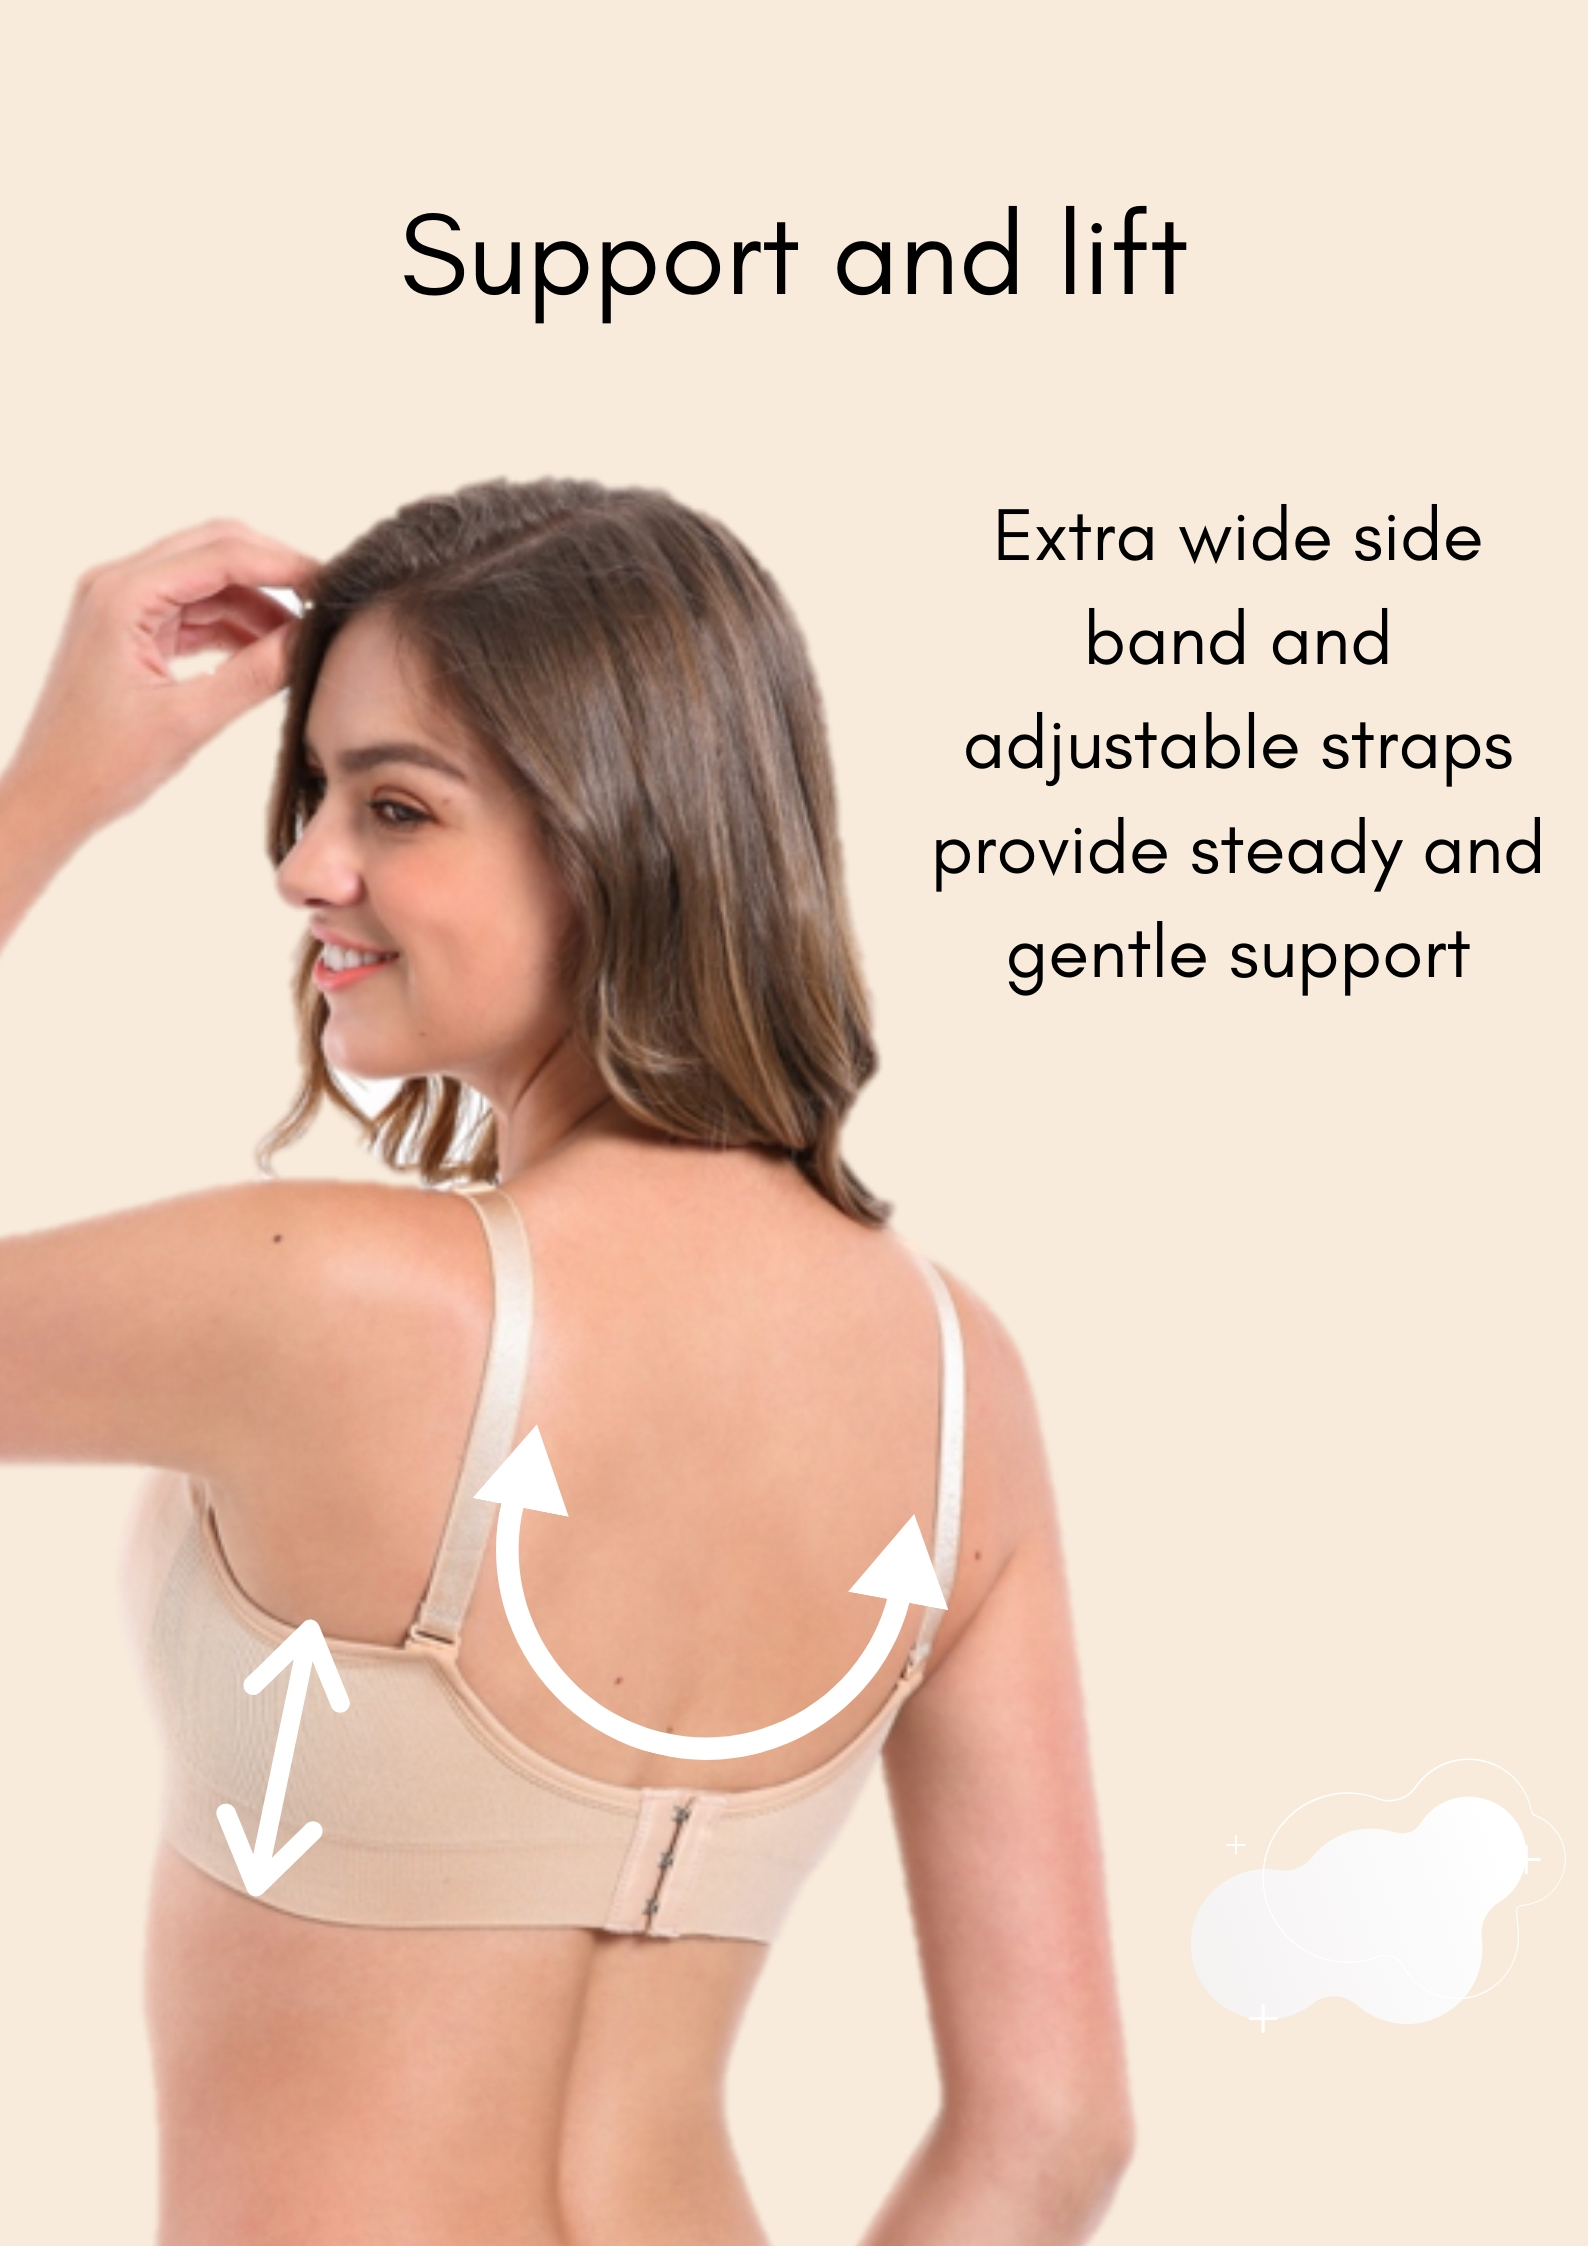 pumping bra support & lift information